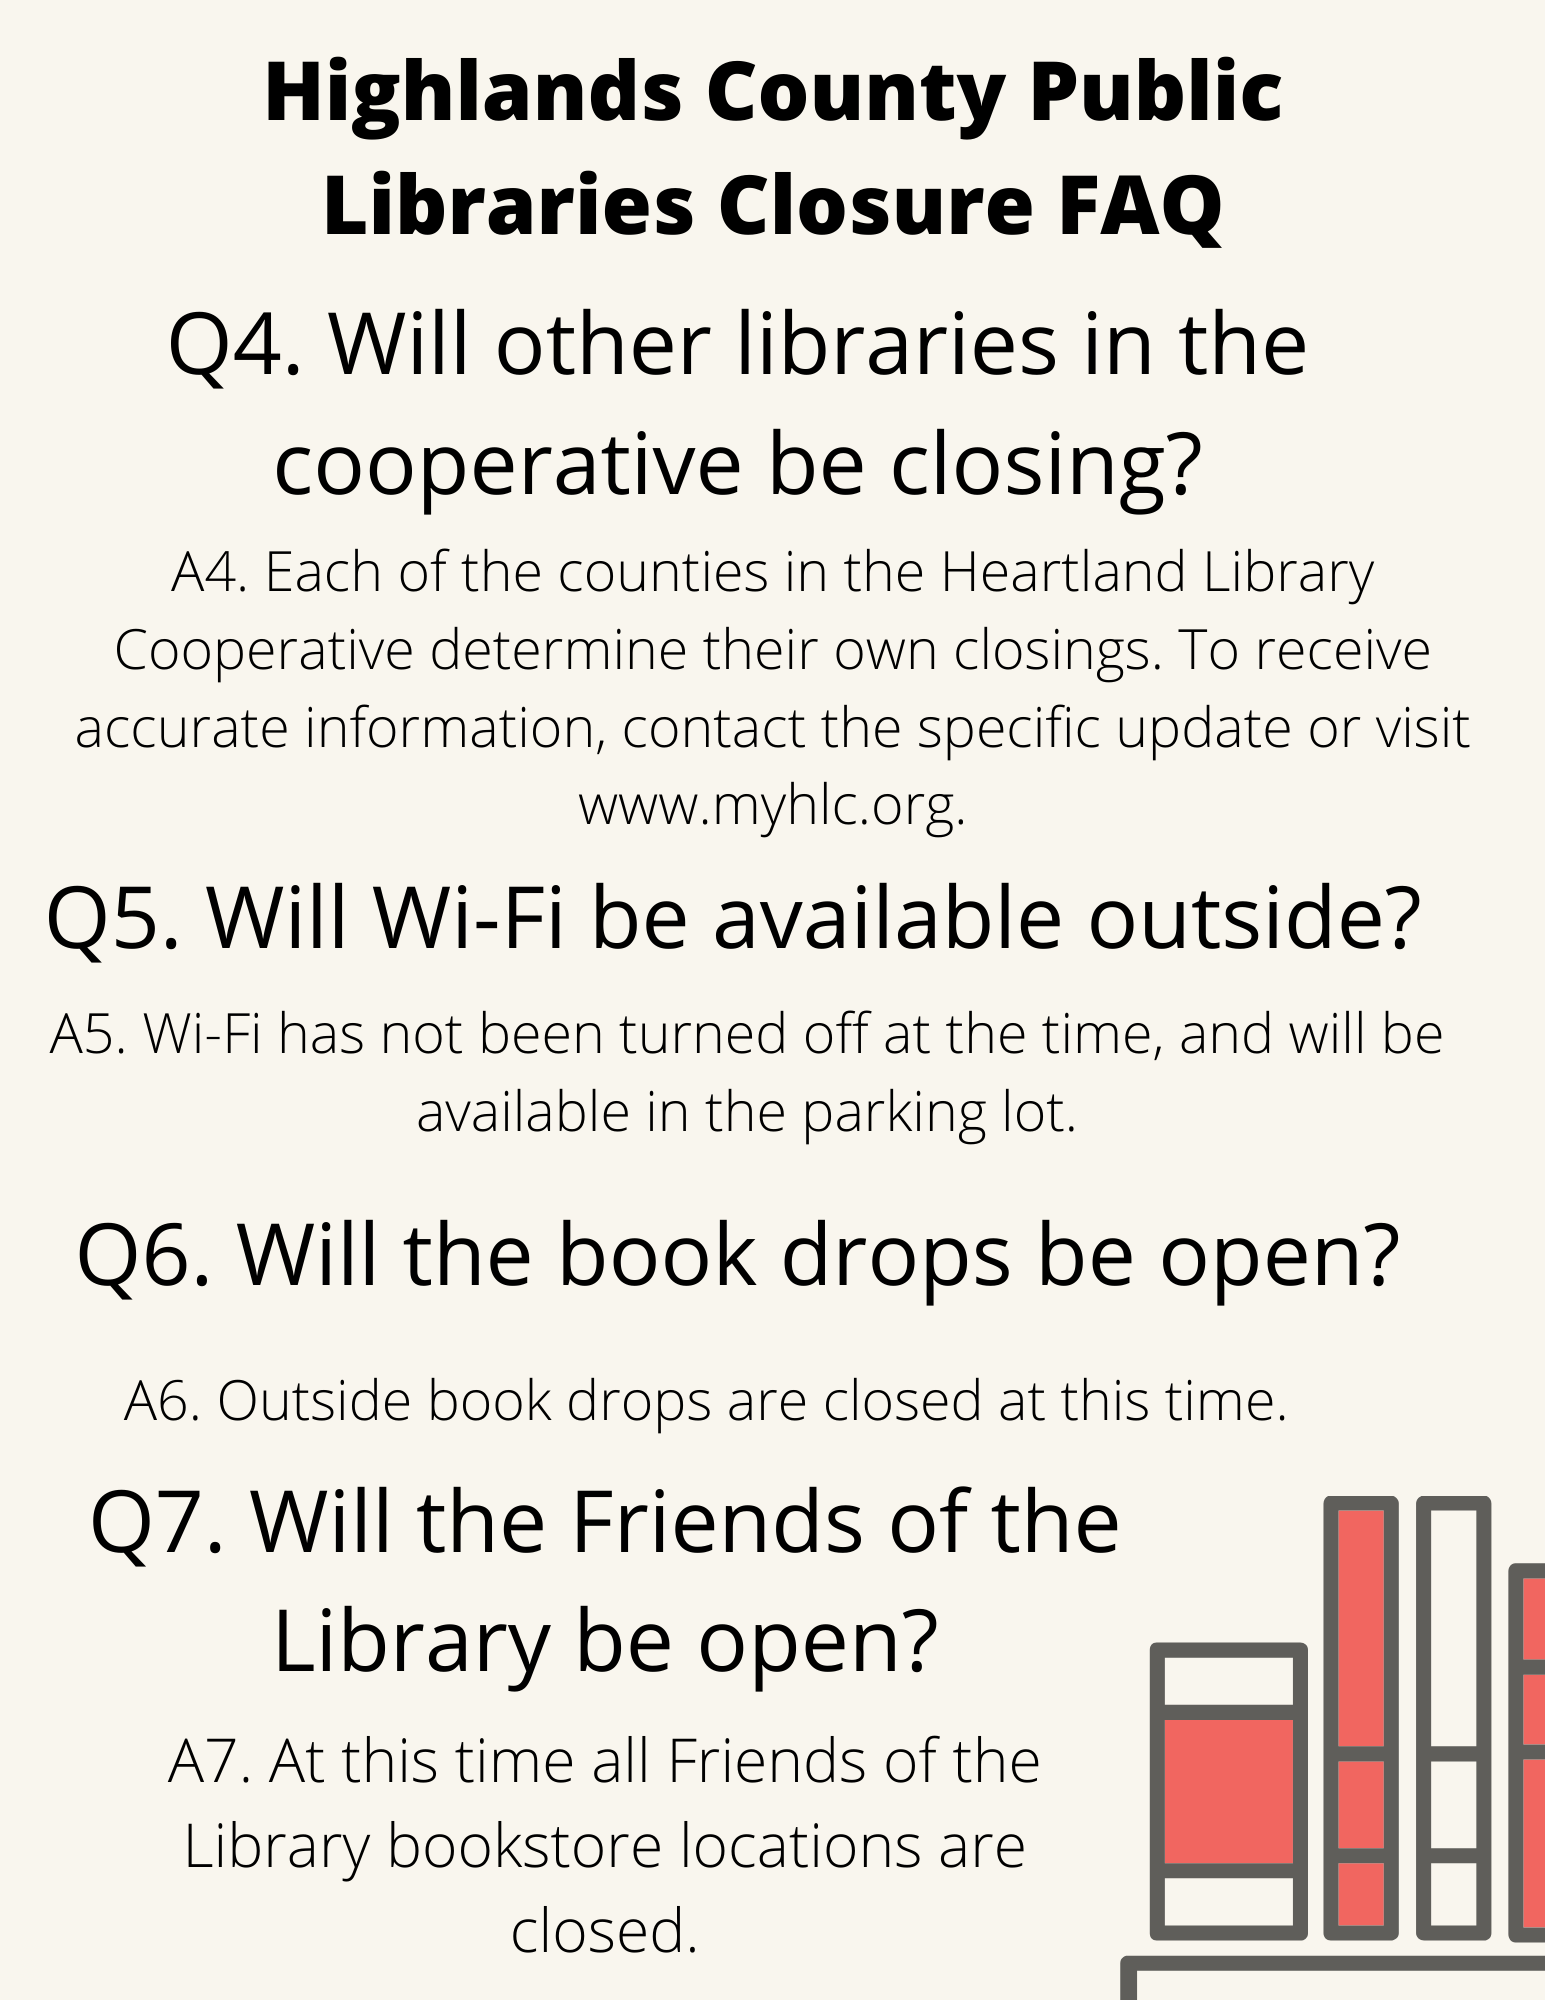 Highlands County patrons, please read for information regarding Highlands County libraries. For more information, call 863-402-6716. We are available to answer your questions, renew materials, and assistance accessing e-resources.